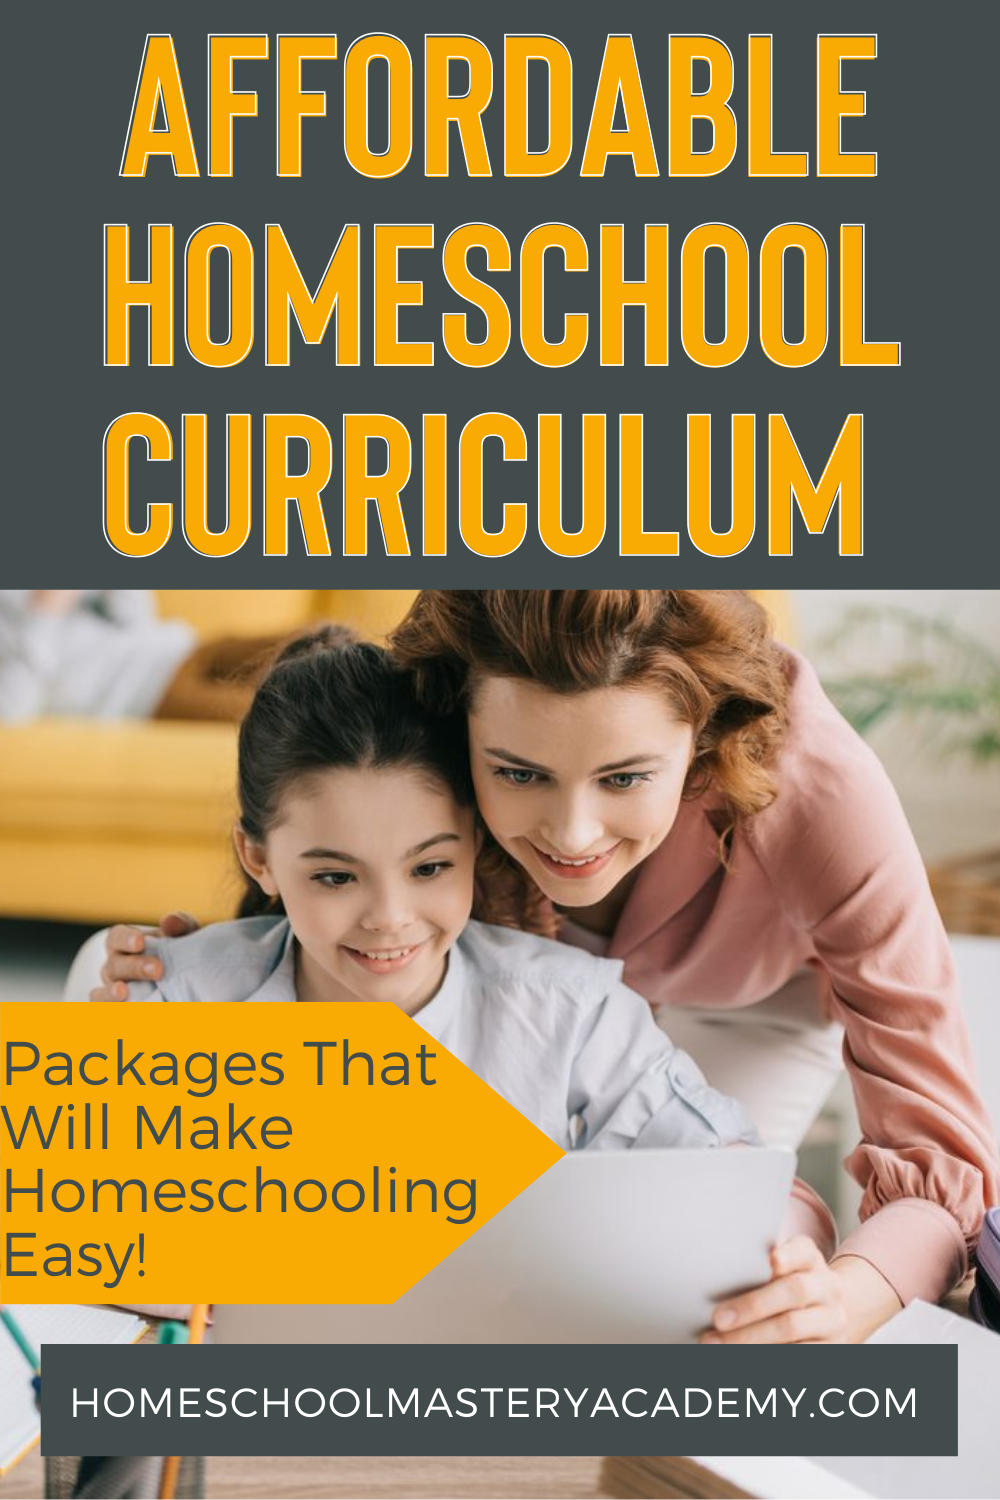 If you need to begin homeschooling now and feel overwhelmed, these affordable homeschool curriculum packages are a great place to start! #homeschool #homeschooling #onlinecurriculum #homeschoolcurriculum #onlinehomeschooling